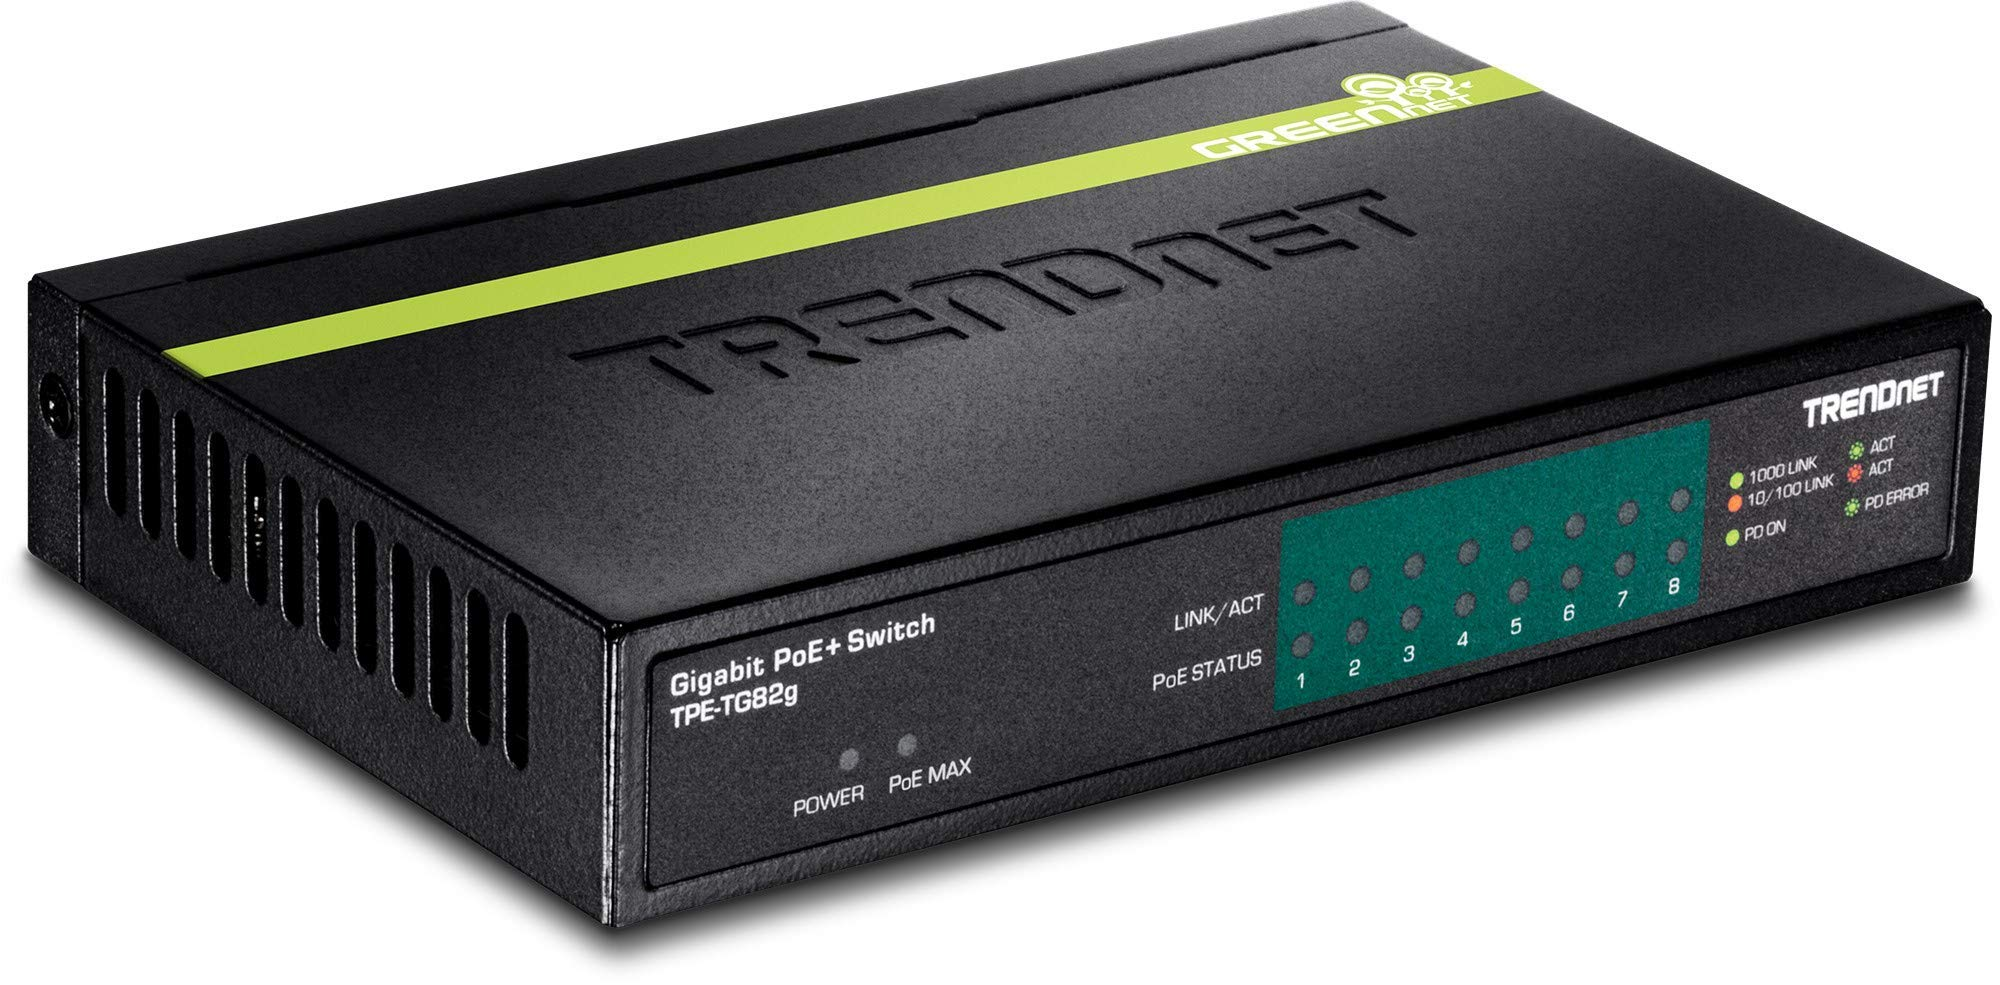 TRENDnet 8-Port GREENnet Gigabit PoE+ Switch, TPE-TG82G, Supports PoE and PoE+ Devices, 61W PoE Budget, 16Gbps Switching Capacity, Data & Power via Ethernet to PoE Access Points & IP Cameras by TRENDnet